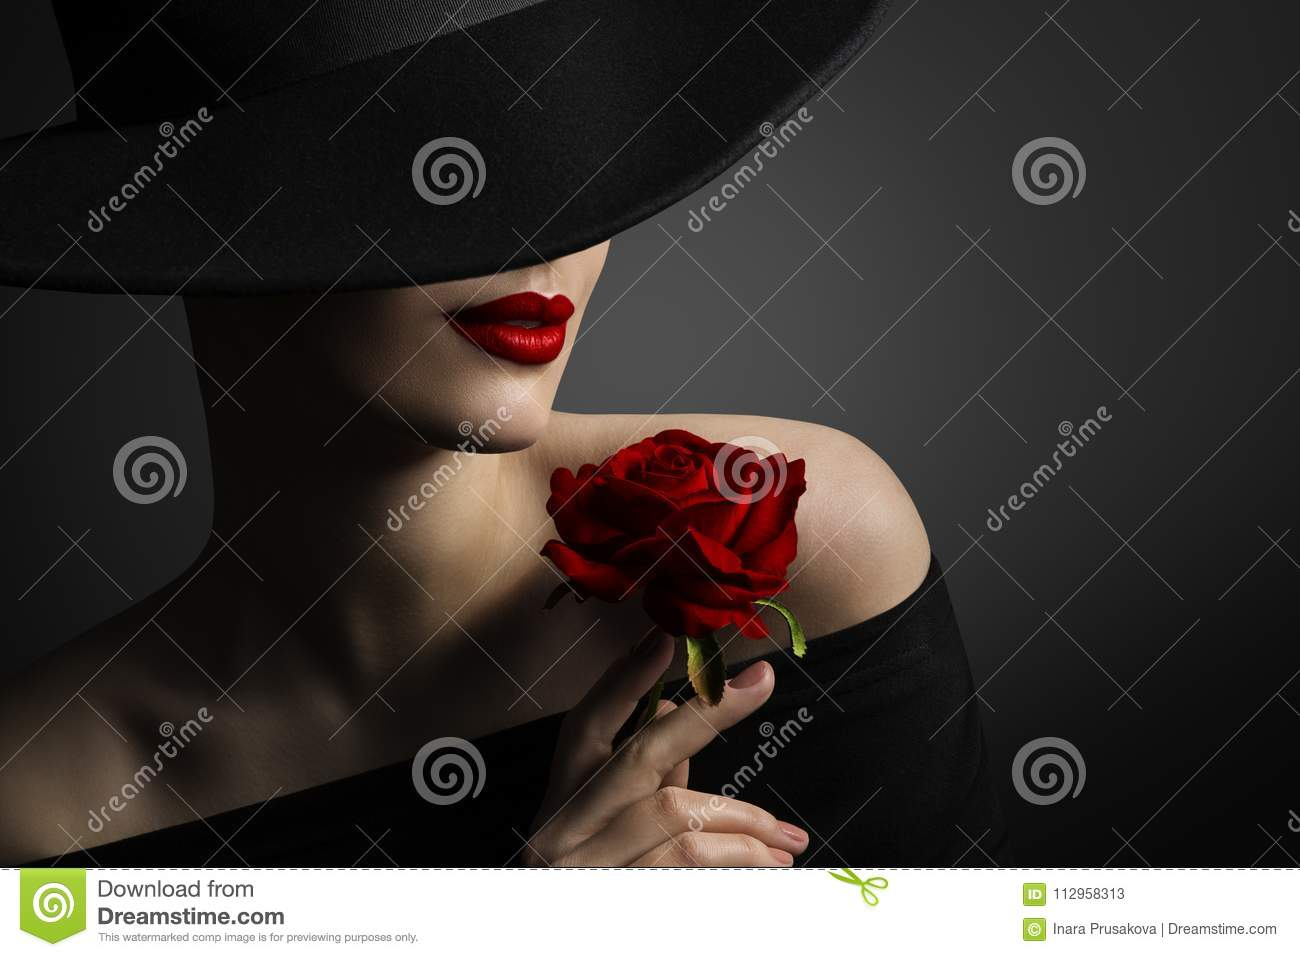 Woman Red Lips and Rose Flower, Fashion Model Beauty Portrait